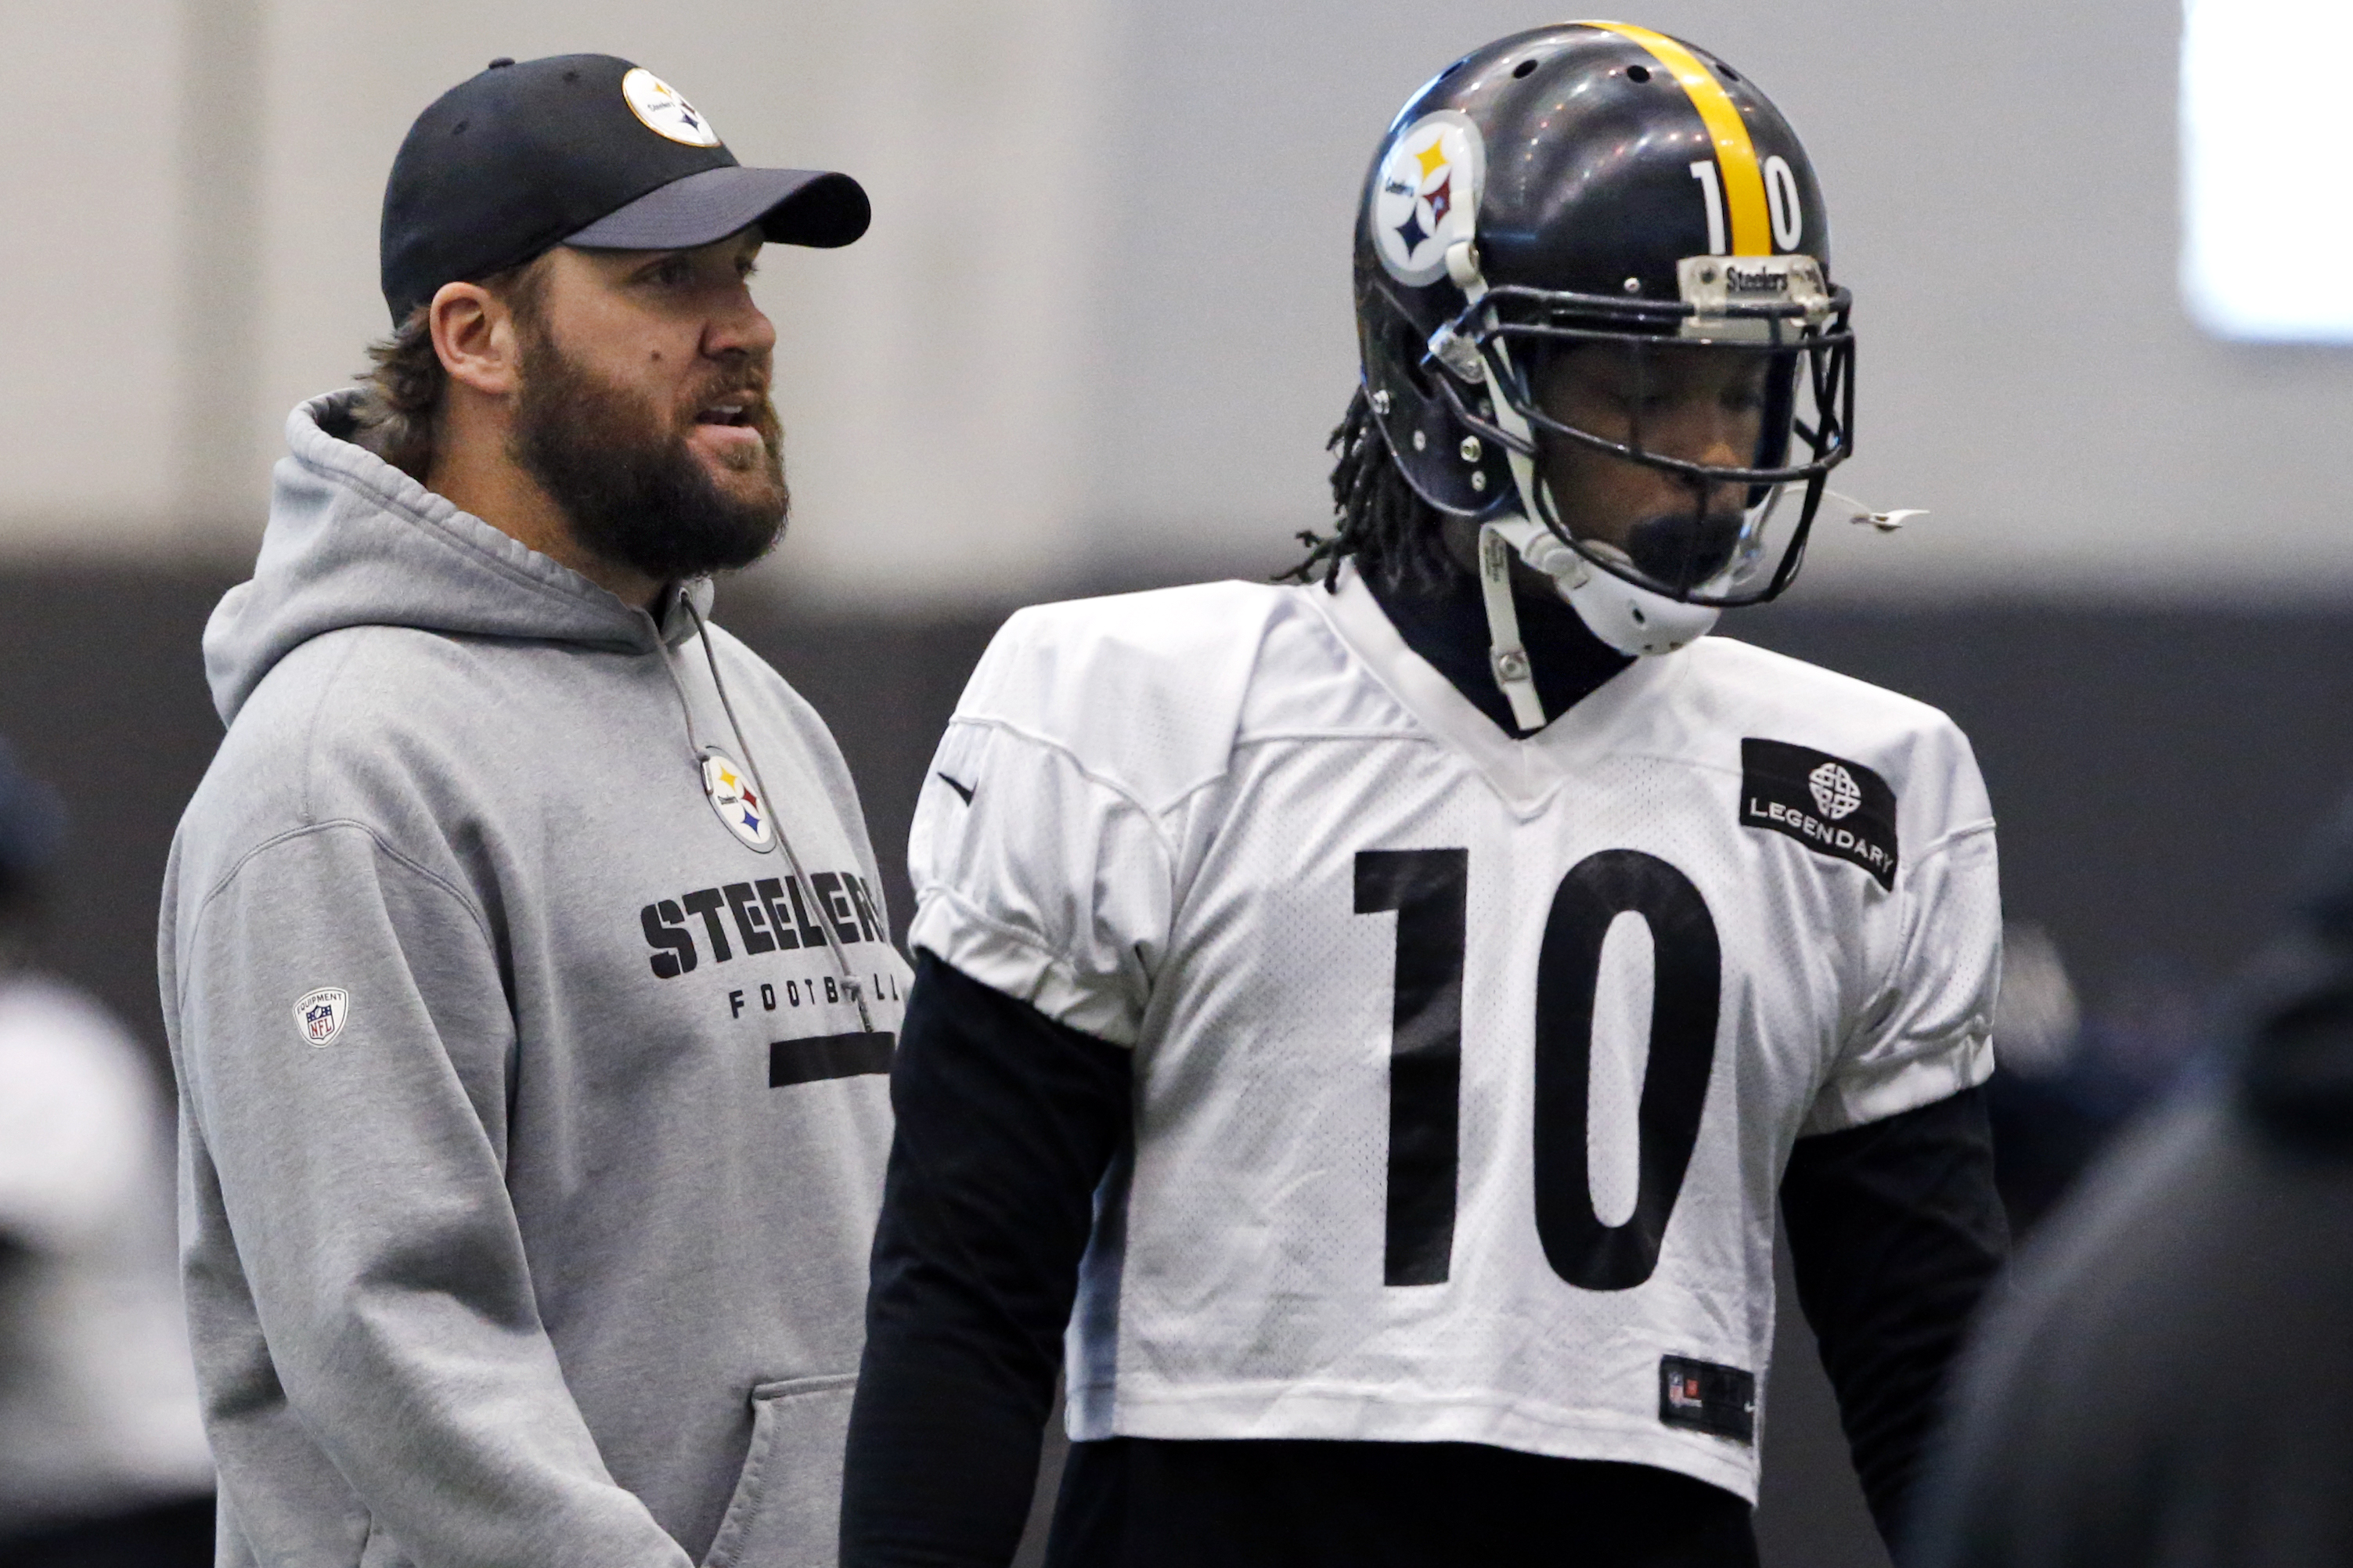 Pittsburgh Steelers quarterback Ben Roethlisberger, left, watches the offense set up a drill as wide receiver Martavius Bryant takes his position during an NFL football practice, in Pittsburgh, Wednesday, Jan. 13, 2016. The Steelers face the Denver Bronco